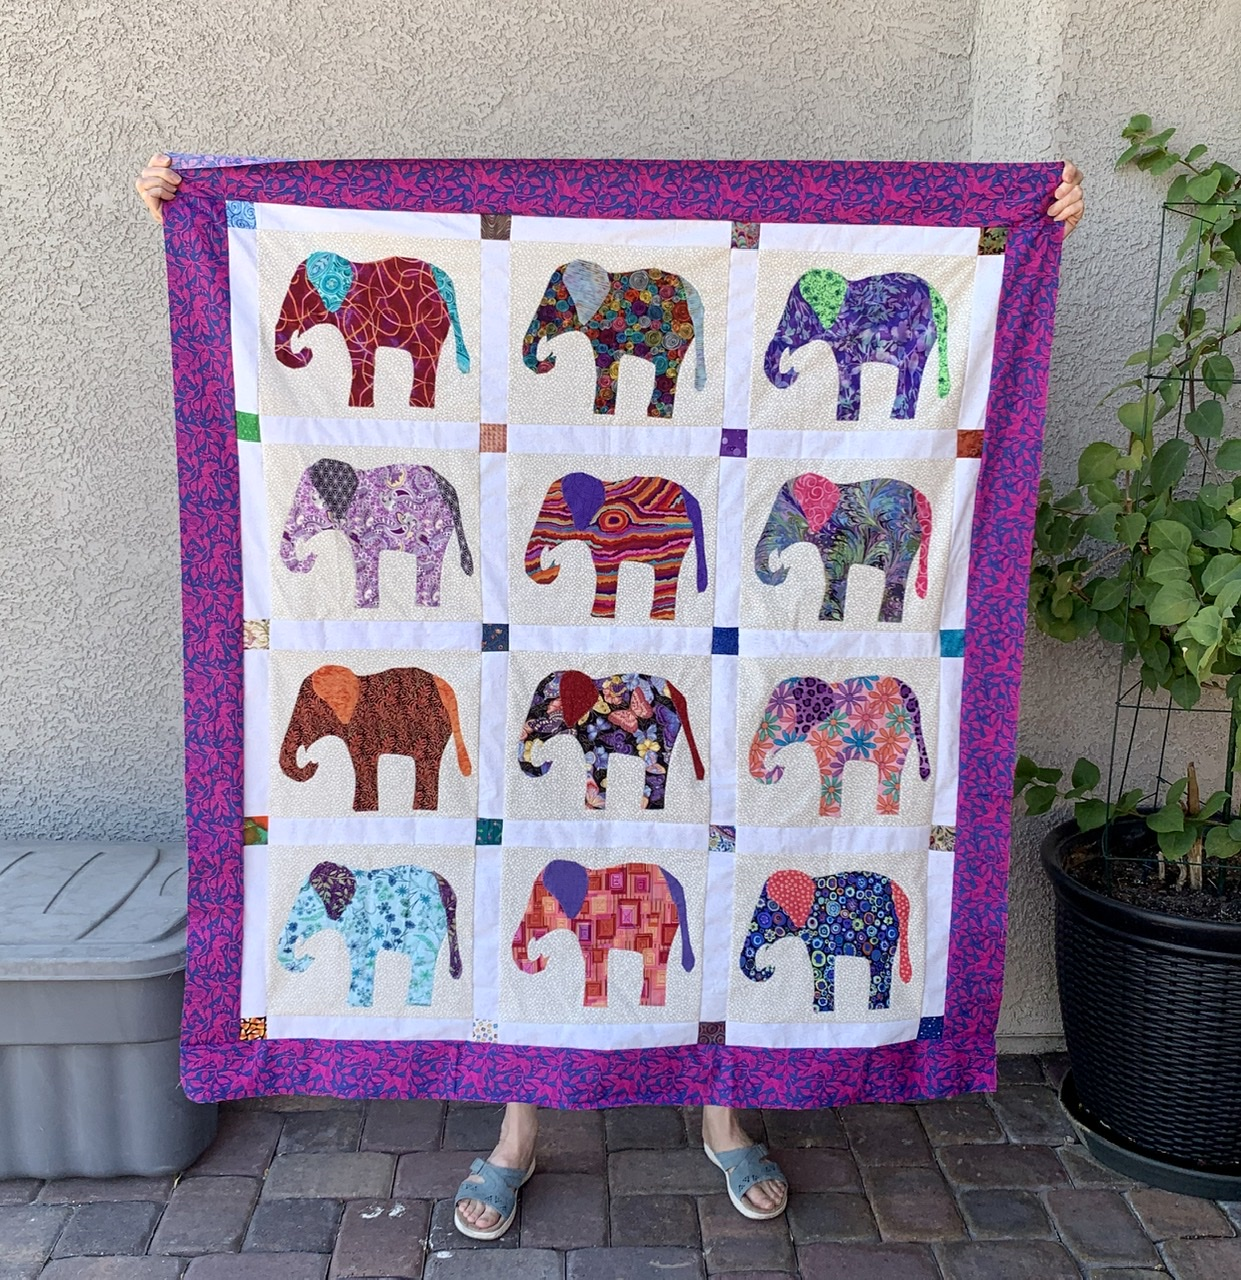 Finally, The Appliqué Elephant Flimsy